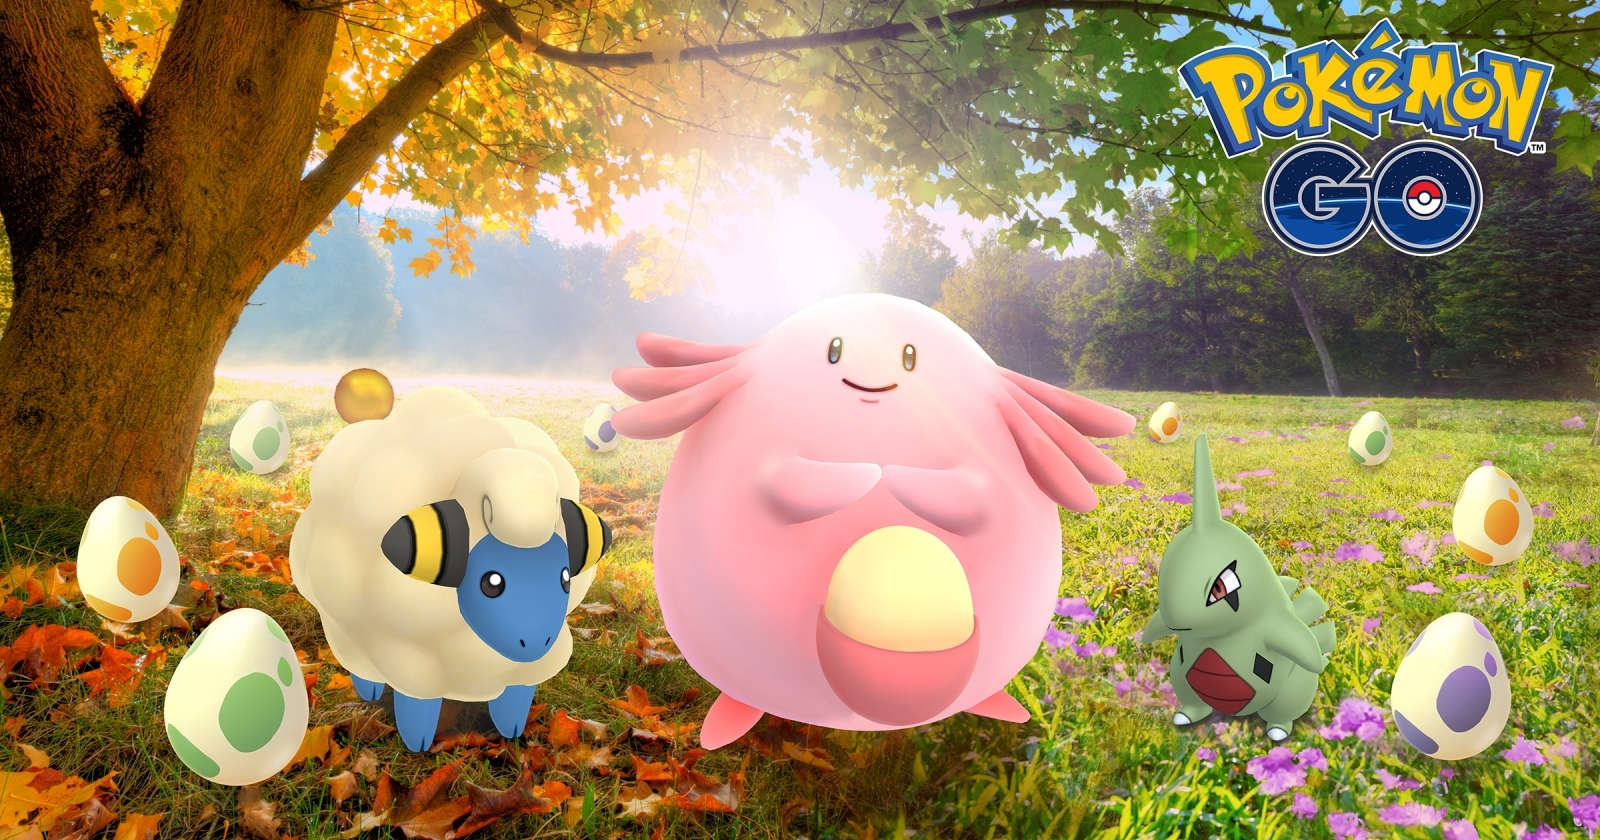 Pokémon Go will offer a new event called